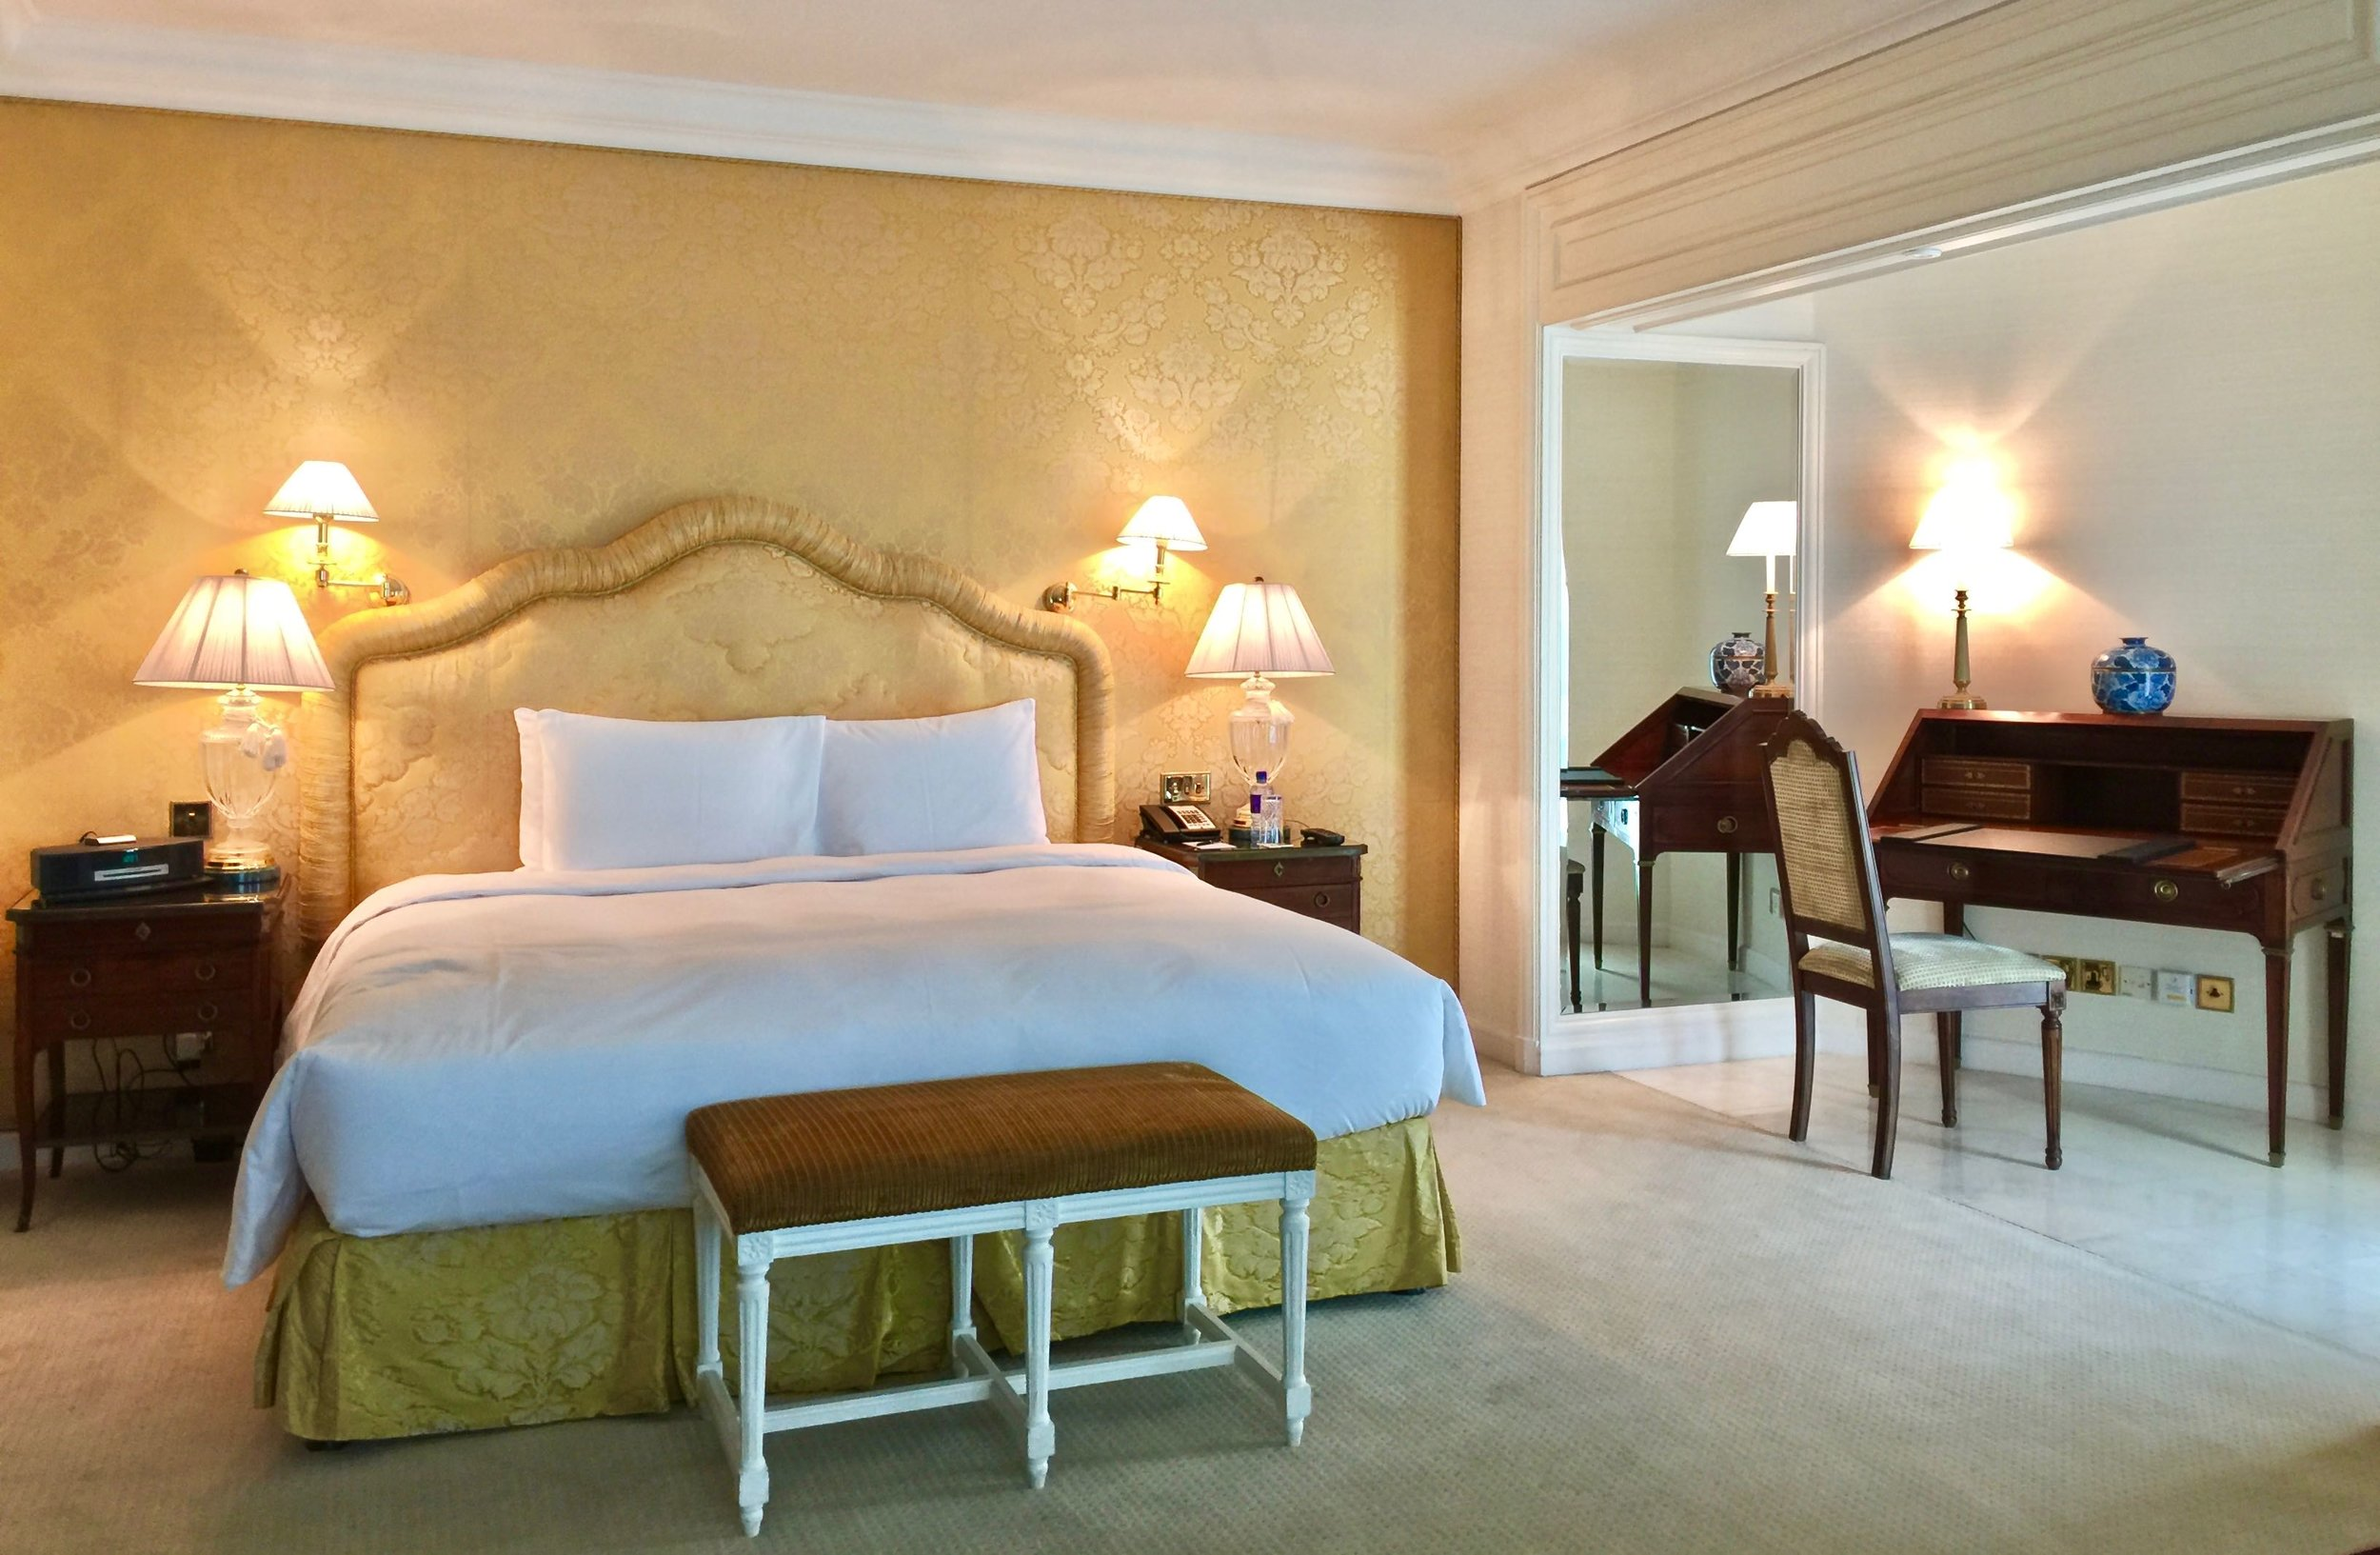 Diplomatic Suite - Bedroom (The Ritz-Carlton, Bahrain)